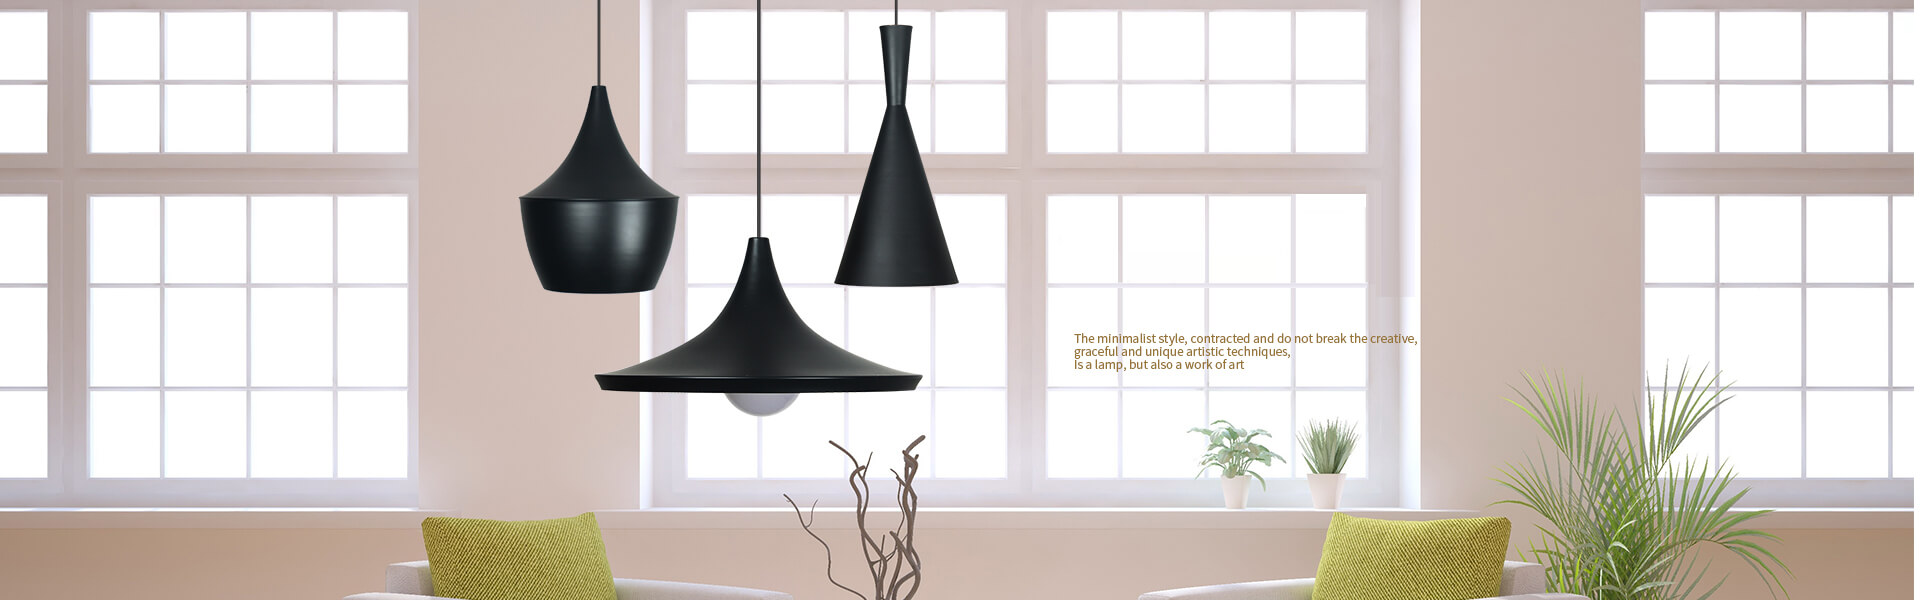 kitchen pendant lgihting